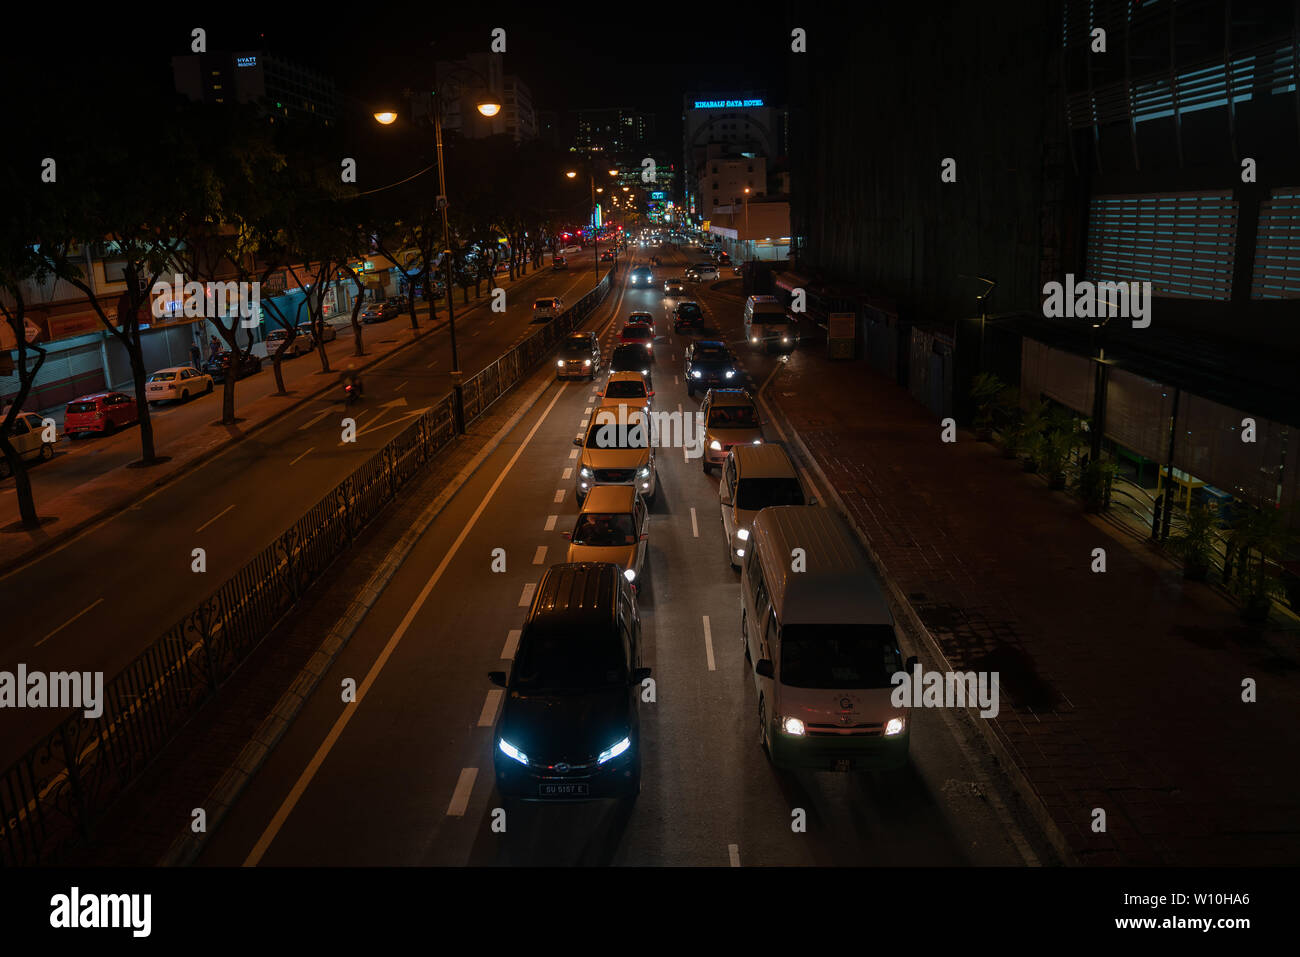 KOTA KINABALU BORNEO - JUNE 1 2019; Street scene with neon and vehicle lights and light trails and patterns from moving cars high point of view. - Stock Image